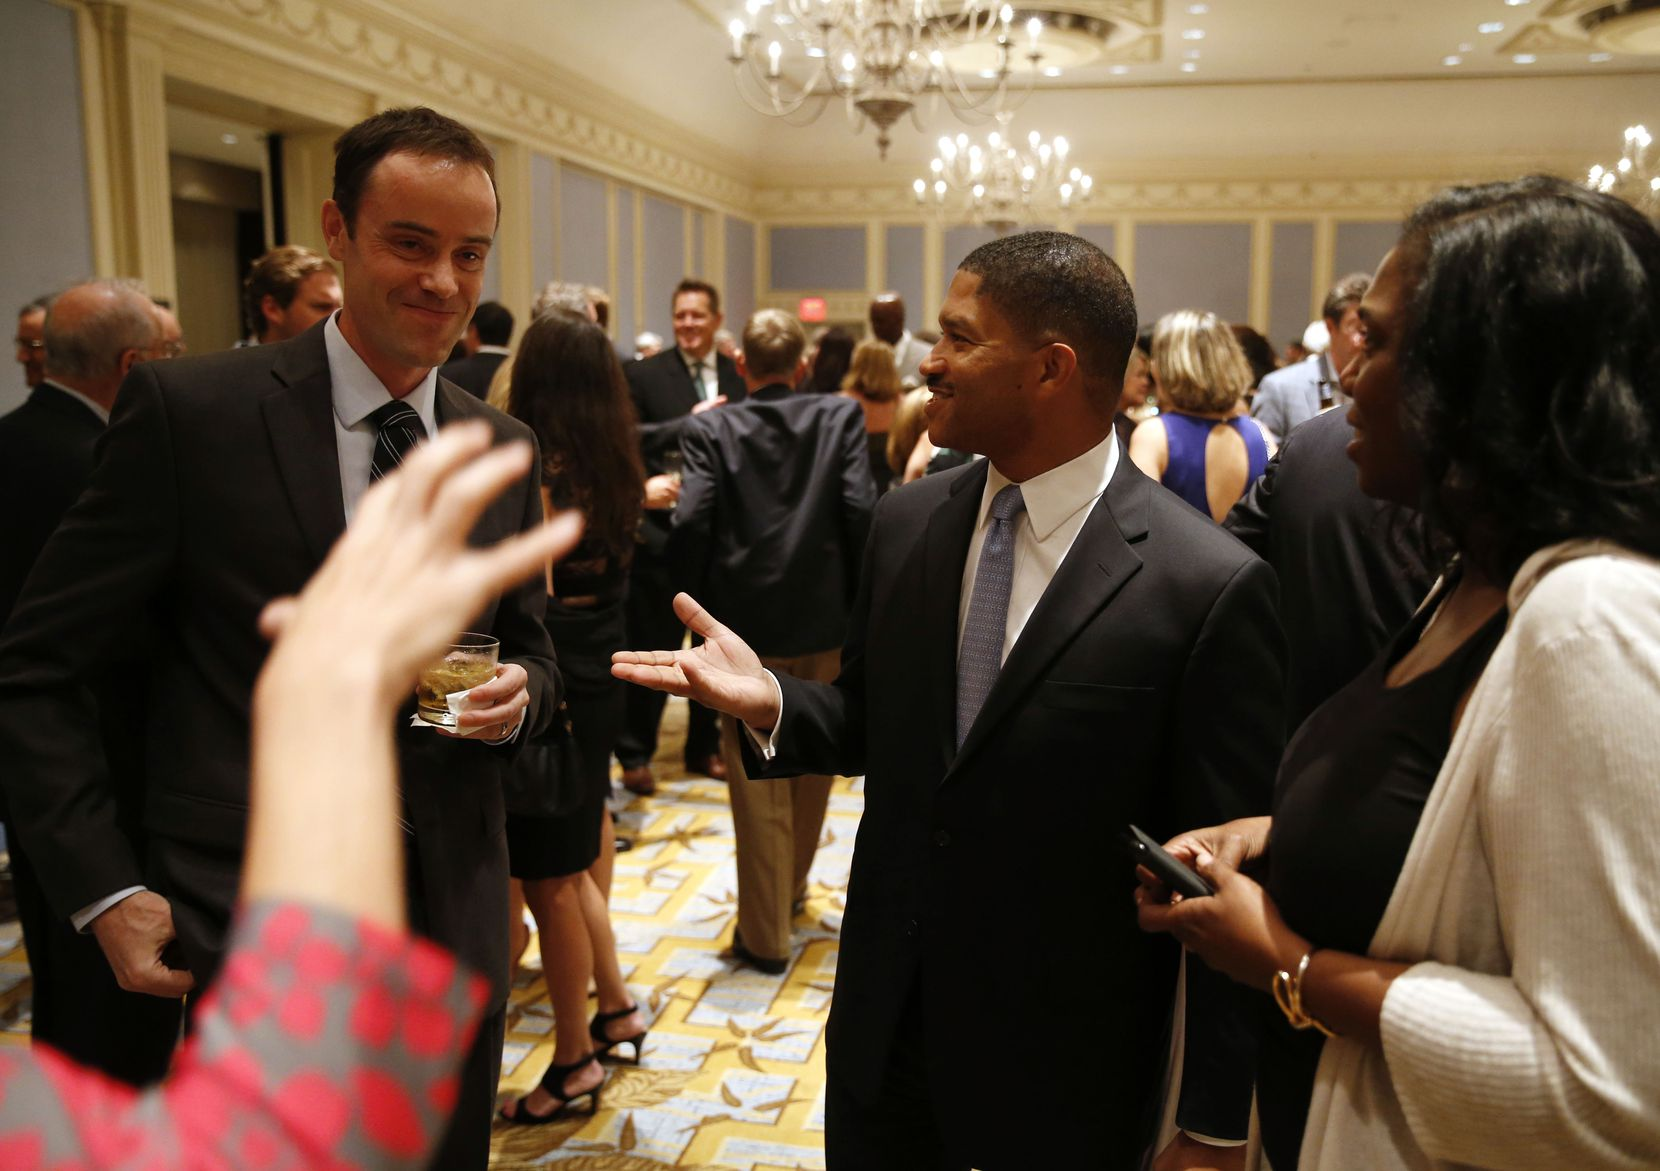 James and Frances Waters greet others before the start of the 33rd annual H. Neil Mallon award dinner at the Hilton Anatole. (Vernon Bryant/Staff Photographer)